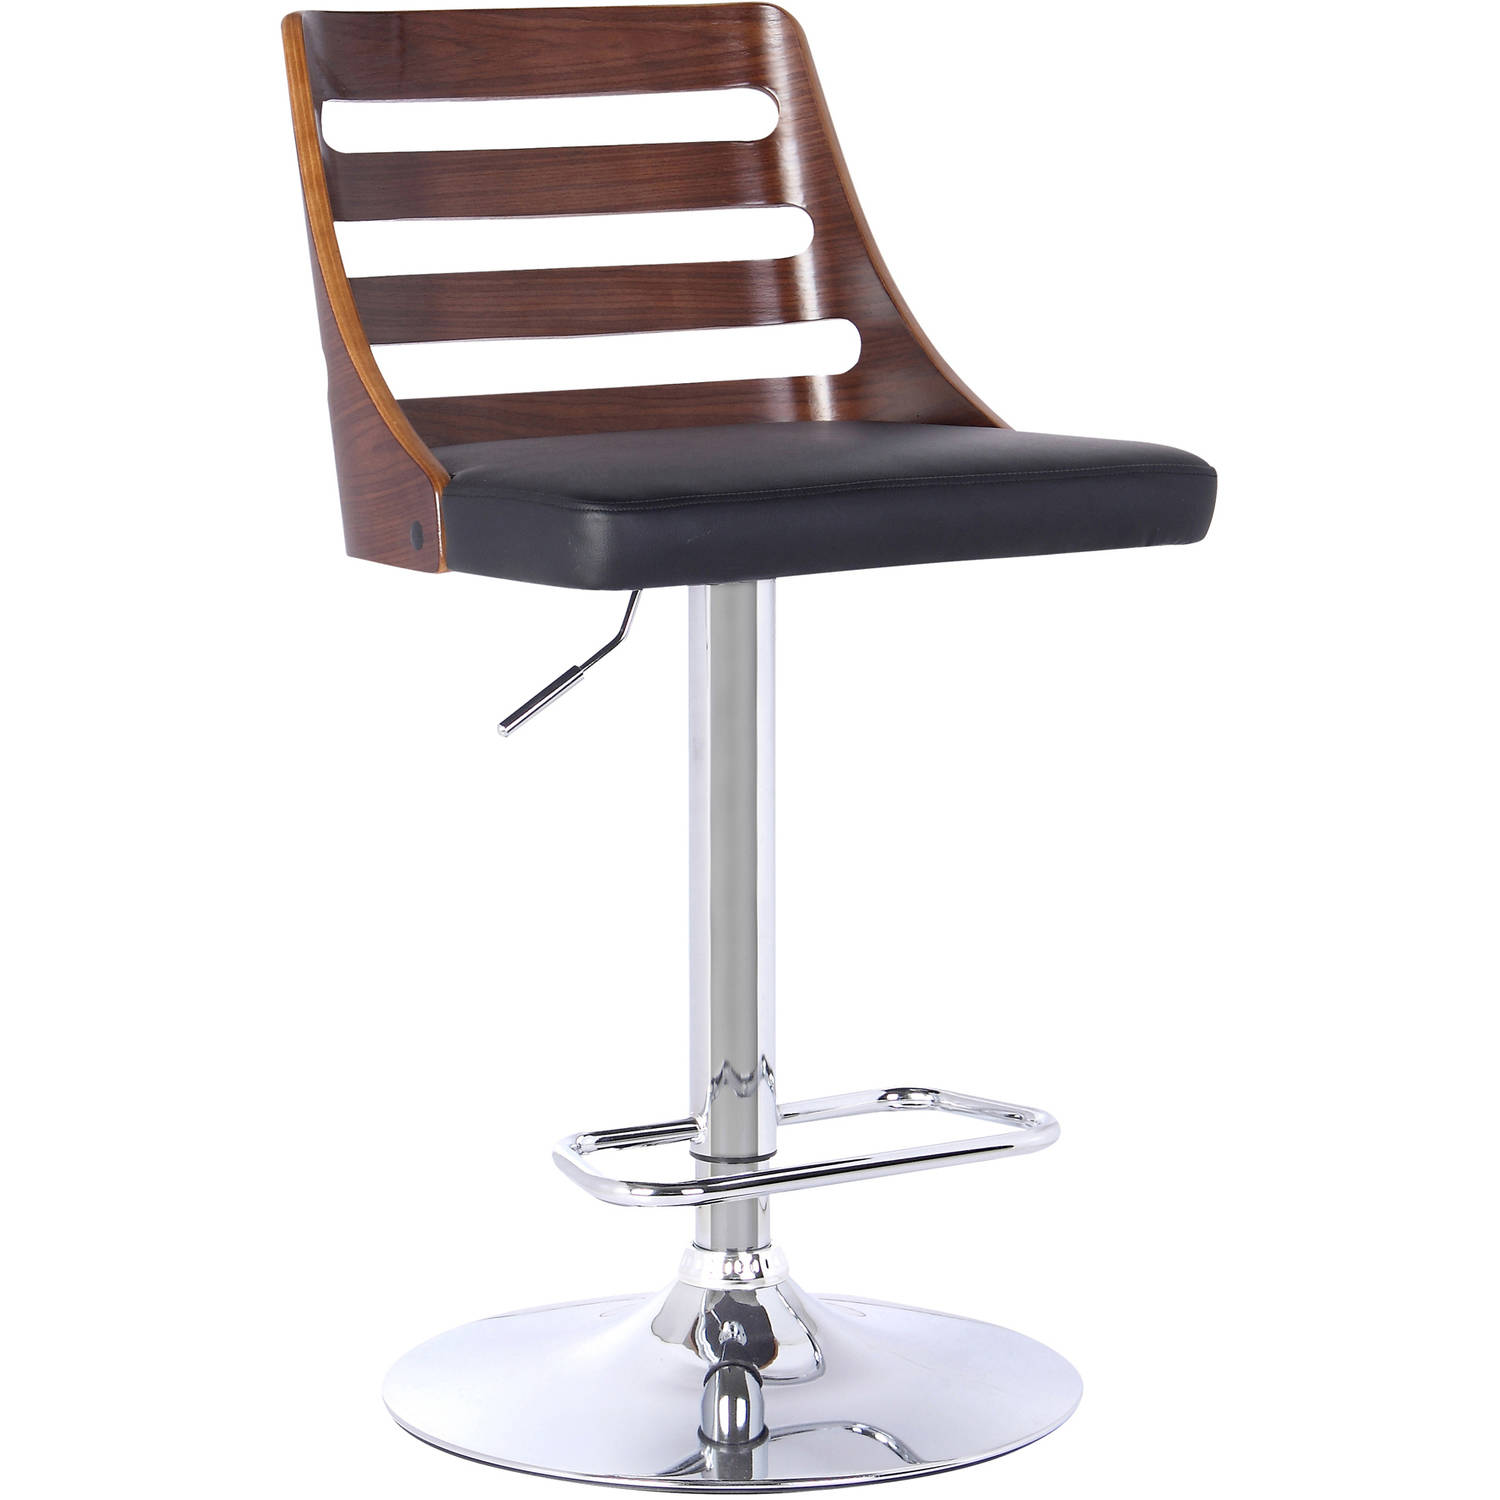 Armen Living Storm Barstool, Chrome Finish with Walnut Wood and PU Upholstery